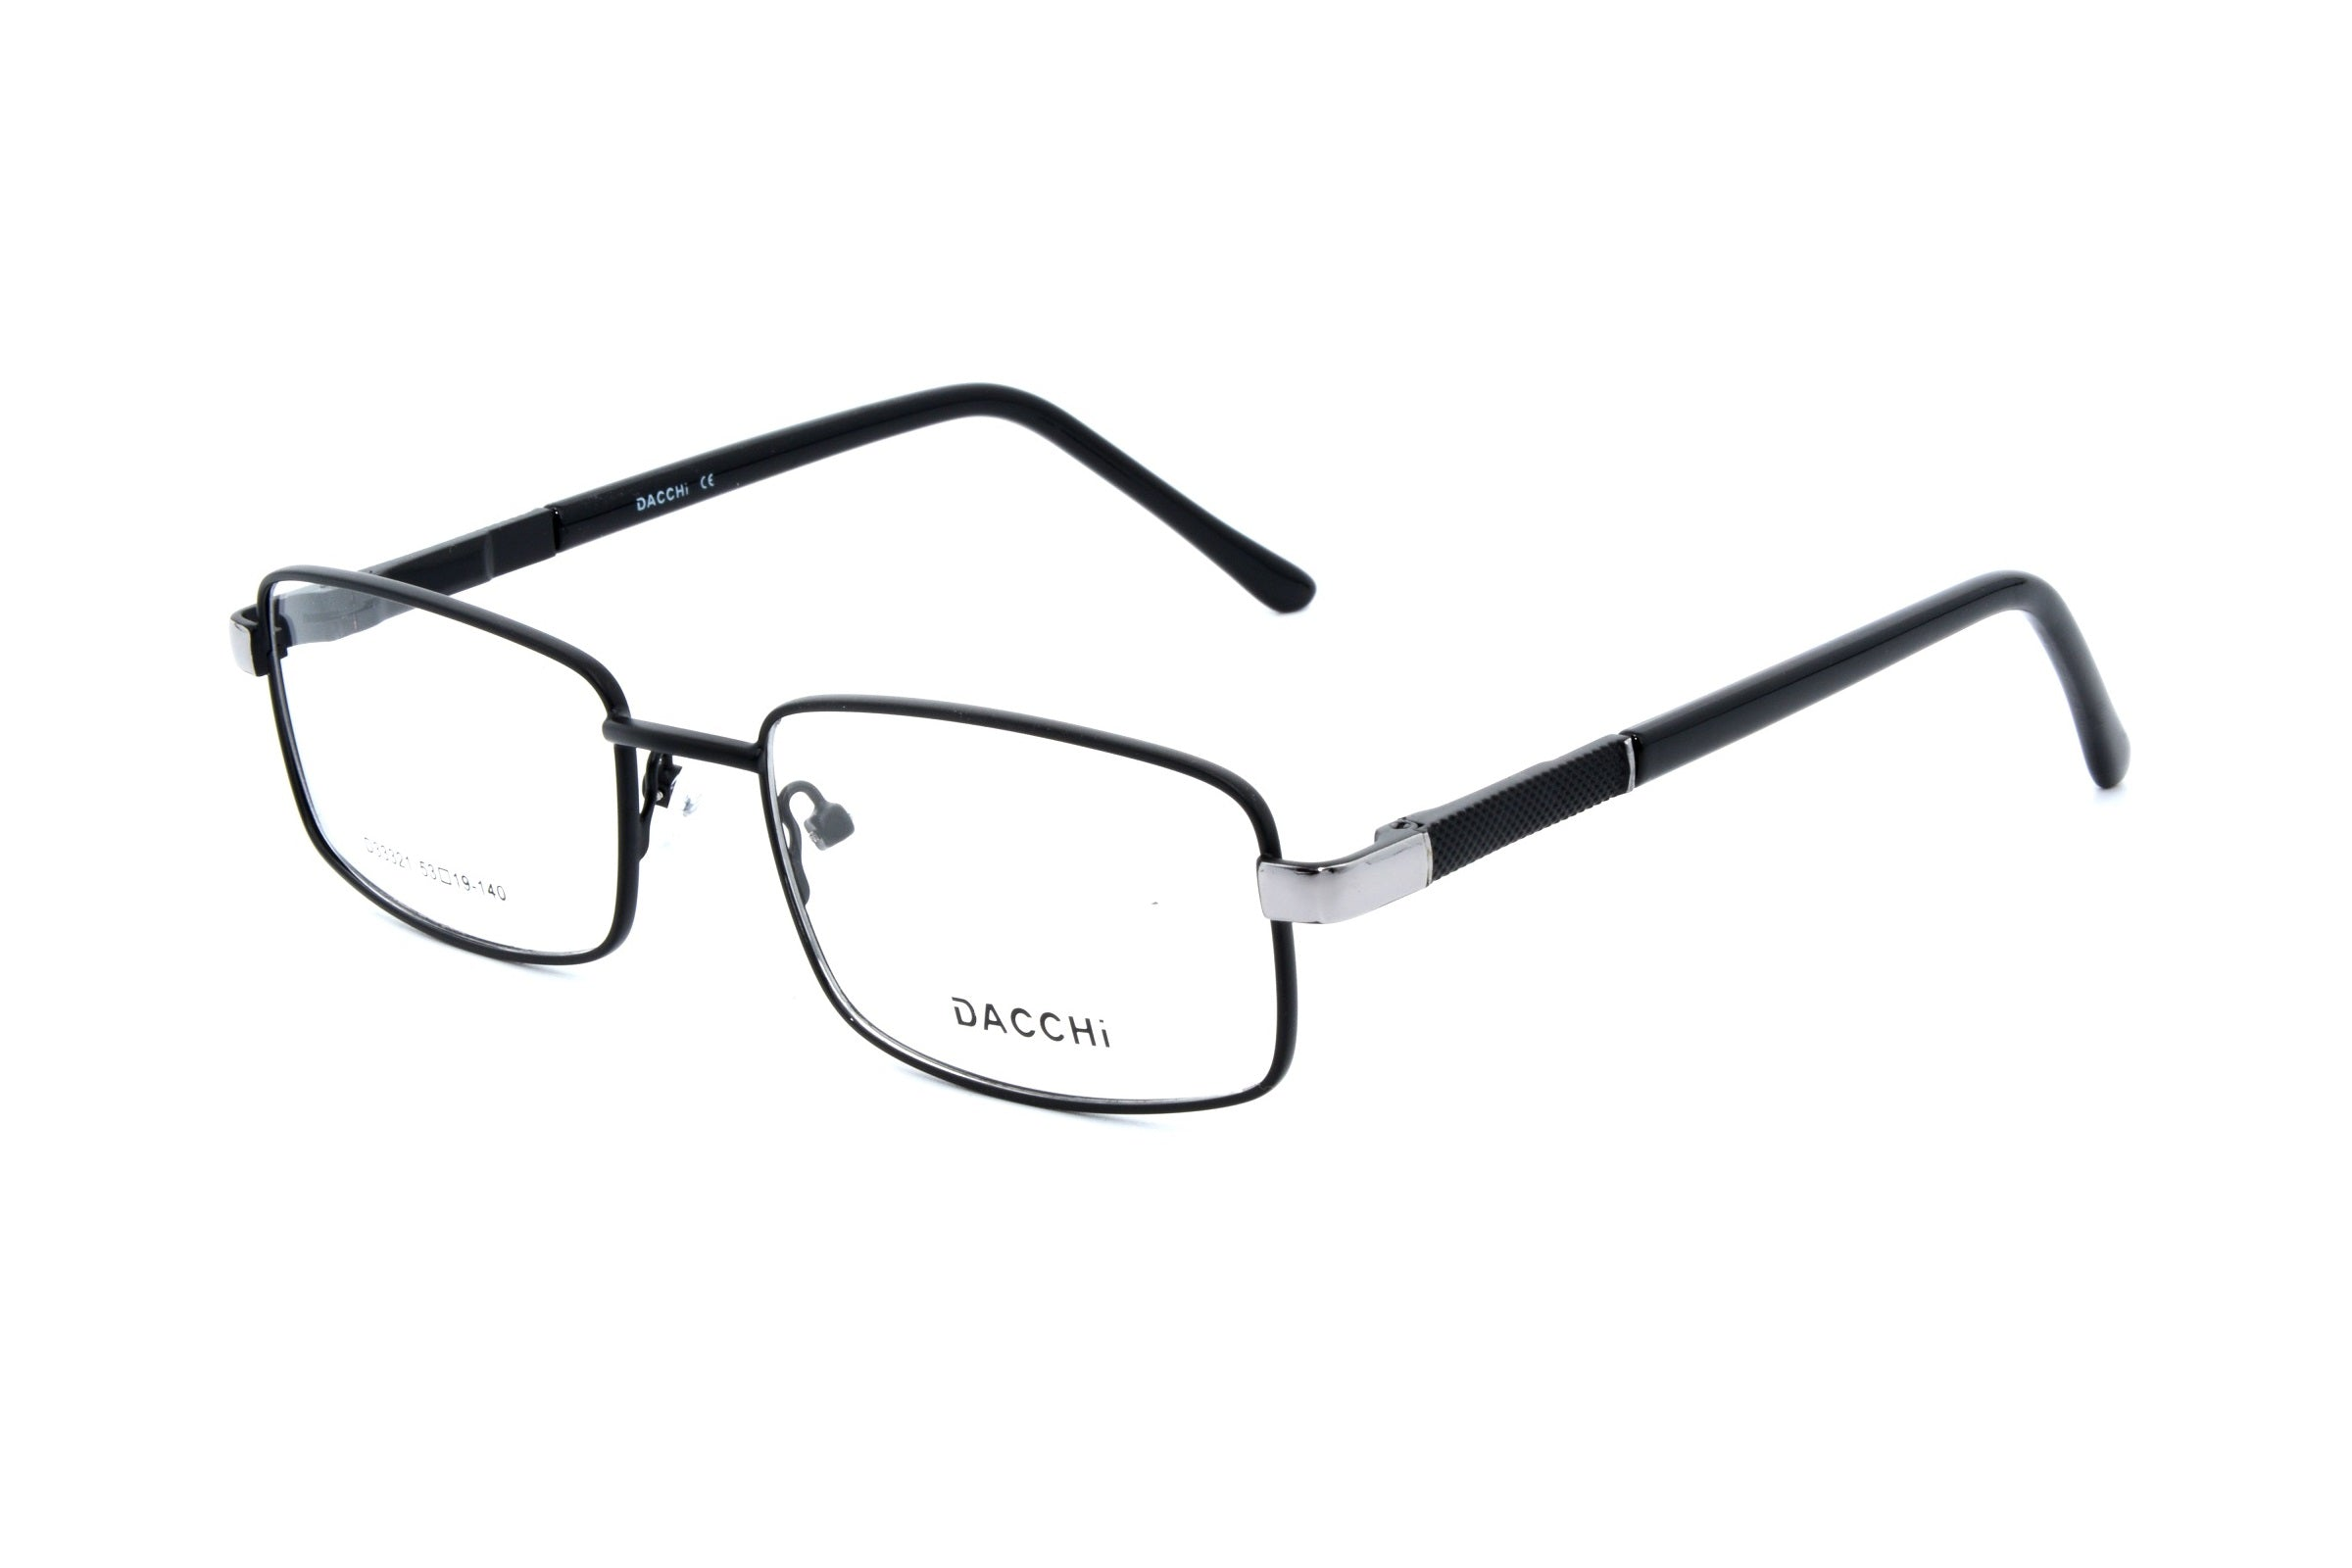 Dacchi eyewear 33321, C1 - Optics Trading